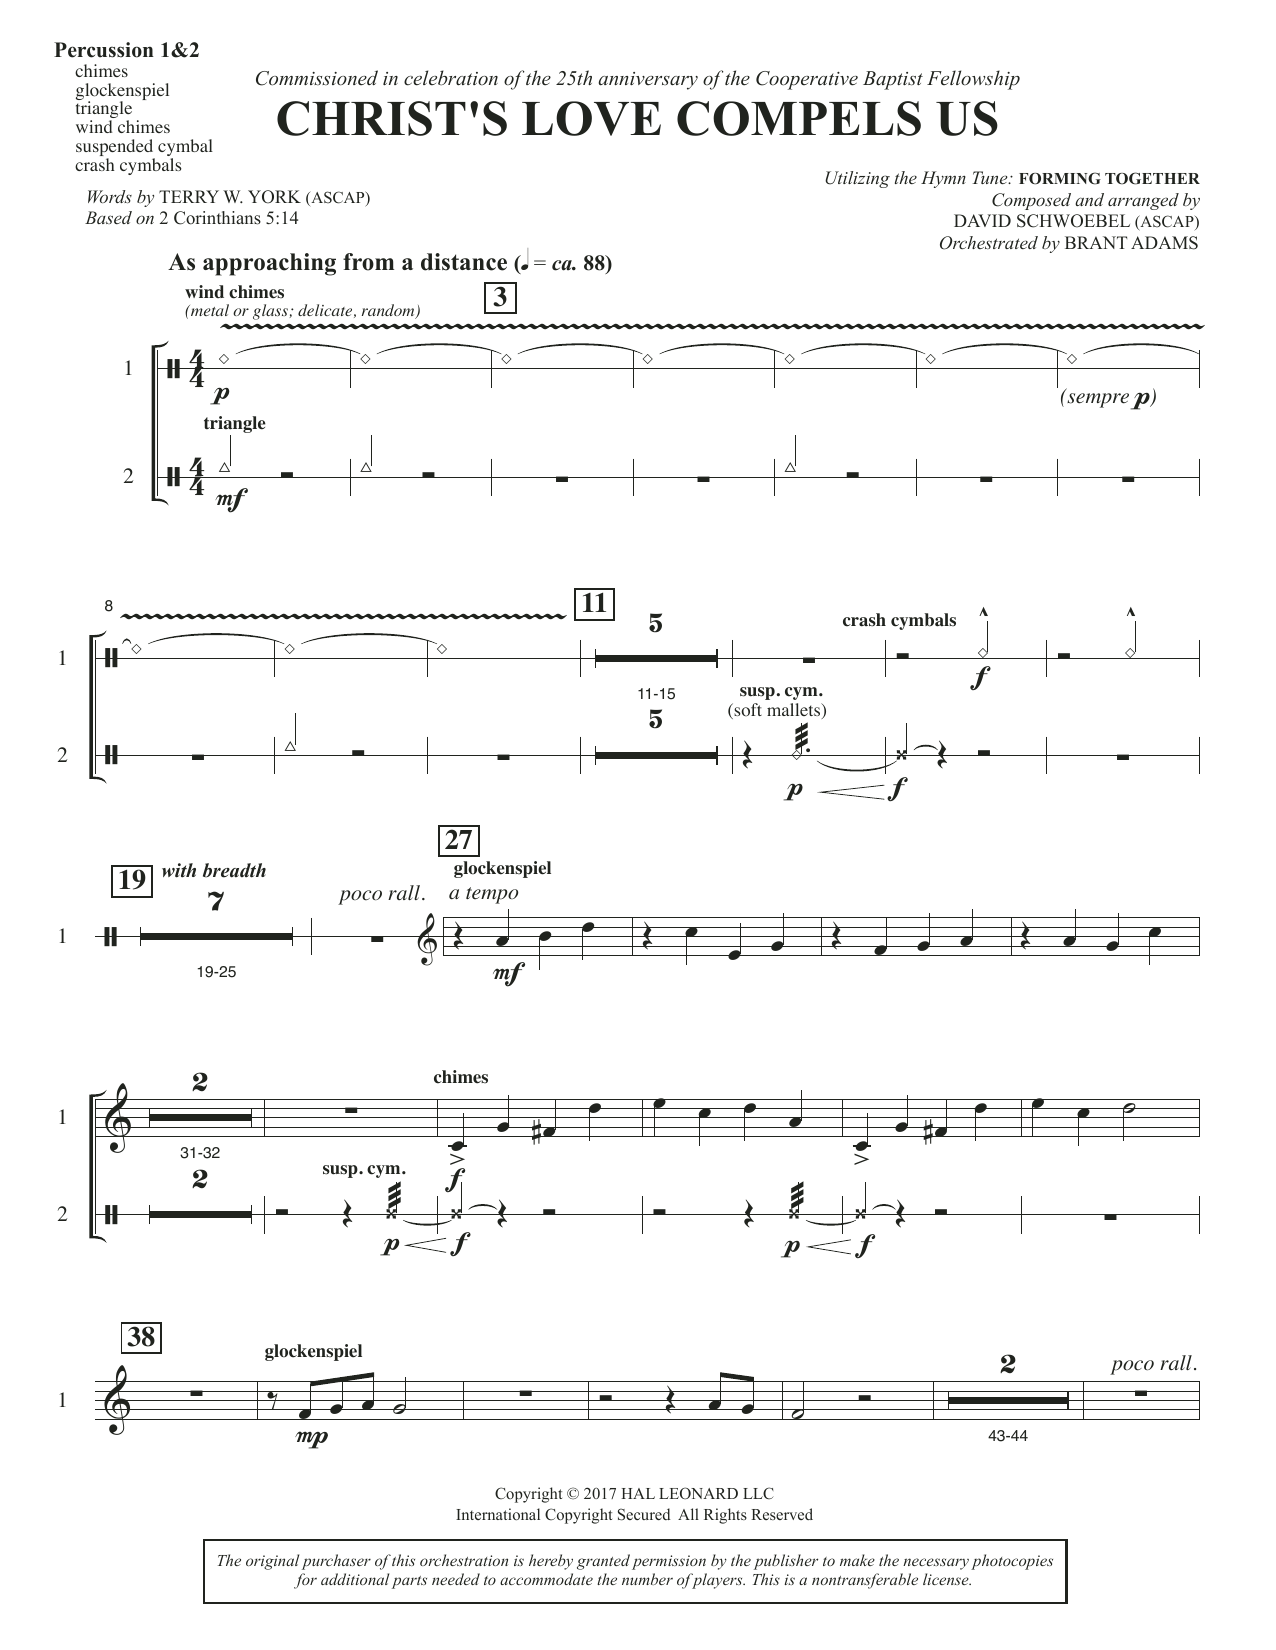 David Schwoebel Christ's Love Compels Us - Percussion 1 & 2 sheet music notes and chords. Download Printable PDF.